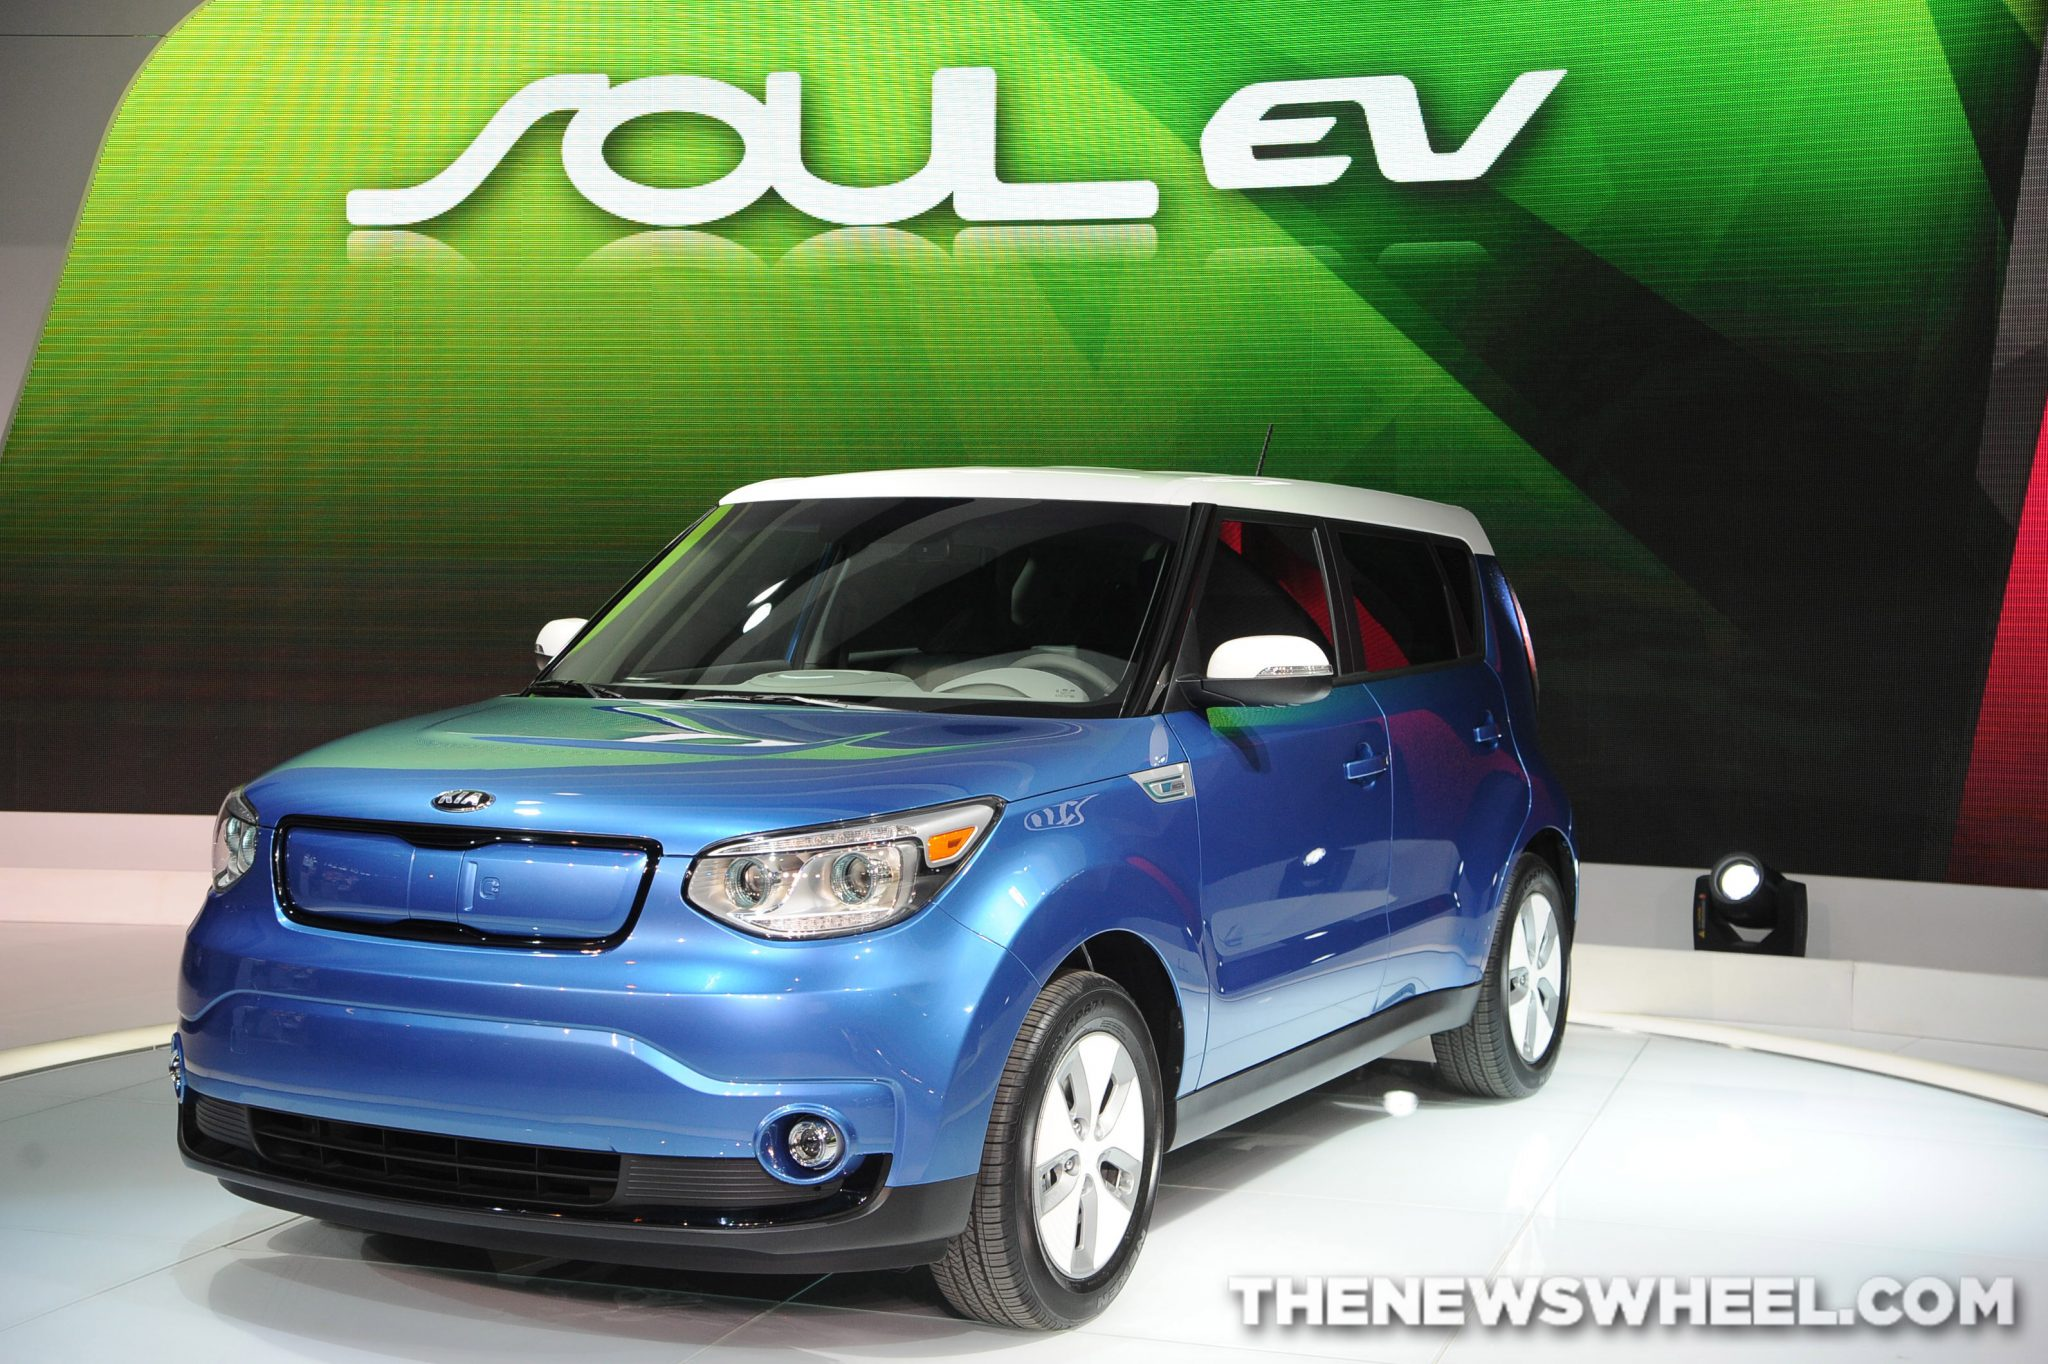 modern kia a blue scheme the accented tone soul two ev features pin color